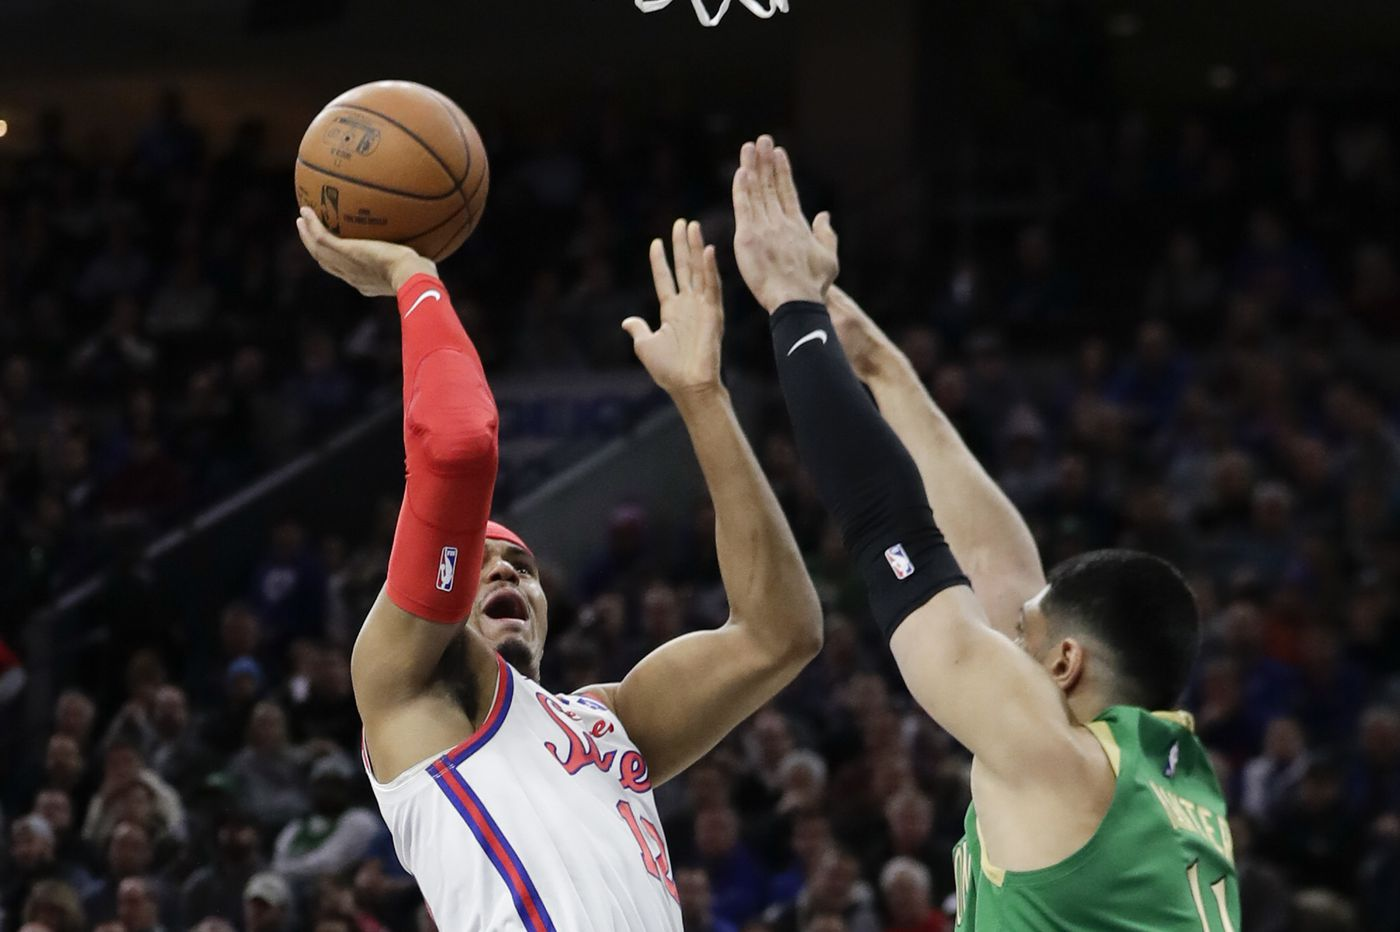 With or without Joel Embiid, Sixers remain impossible to figure | David Murphy